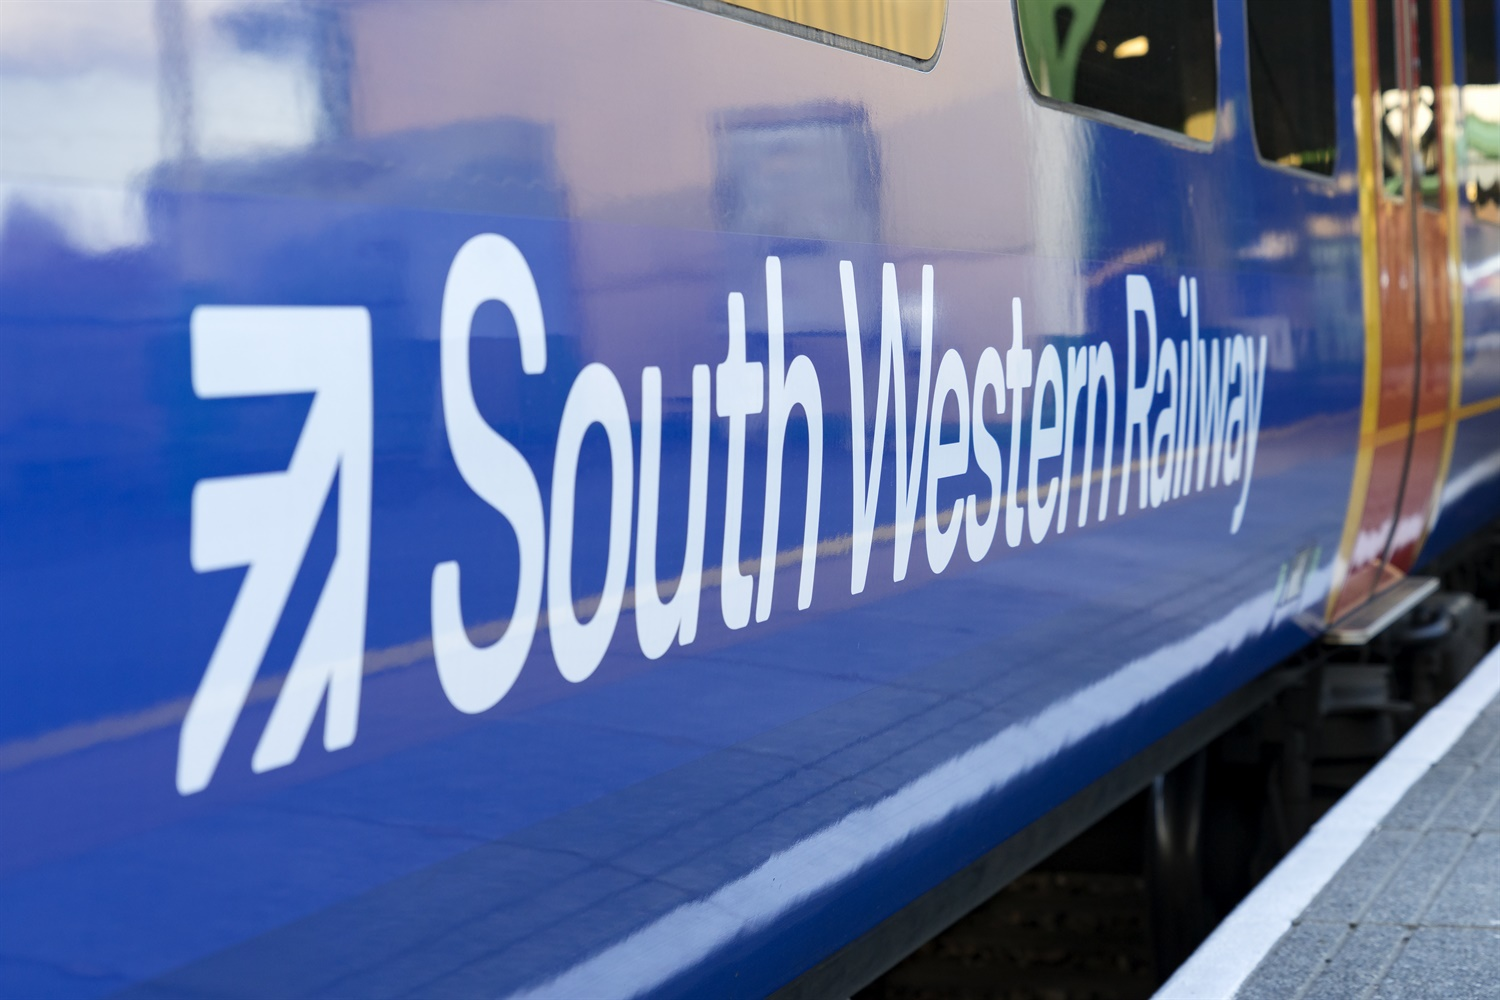 GWR and SWR owner FirstGroup appoints new CEO as it announces fall in rail profits